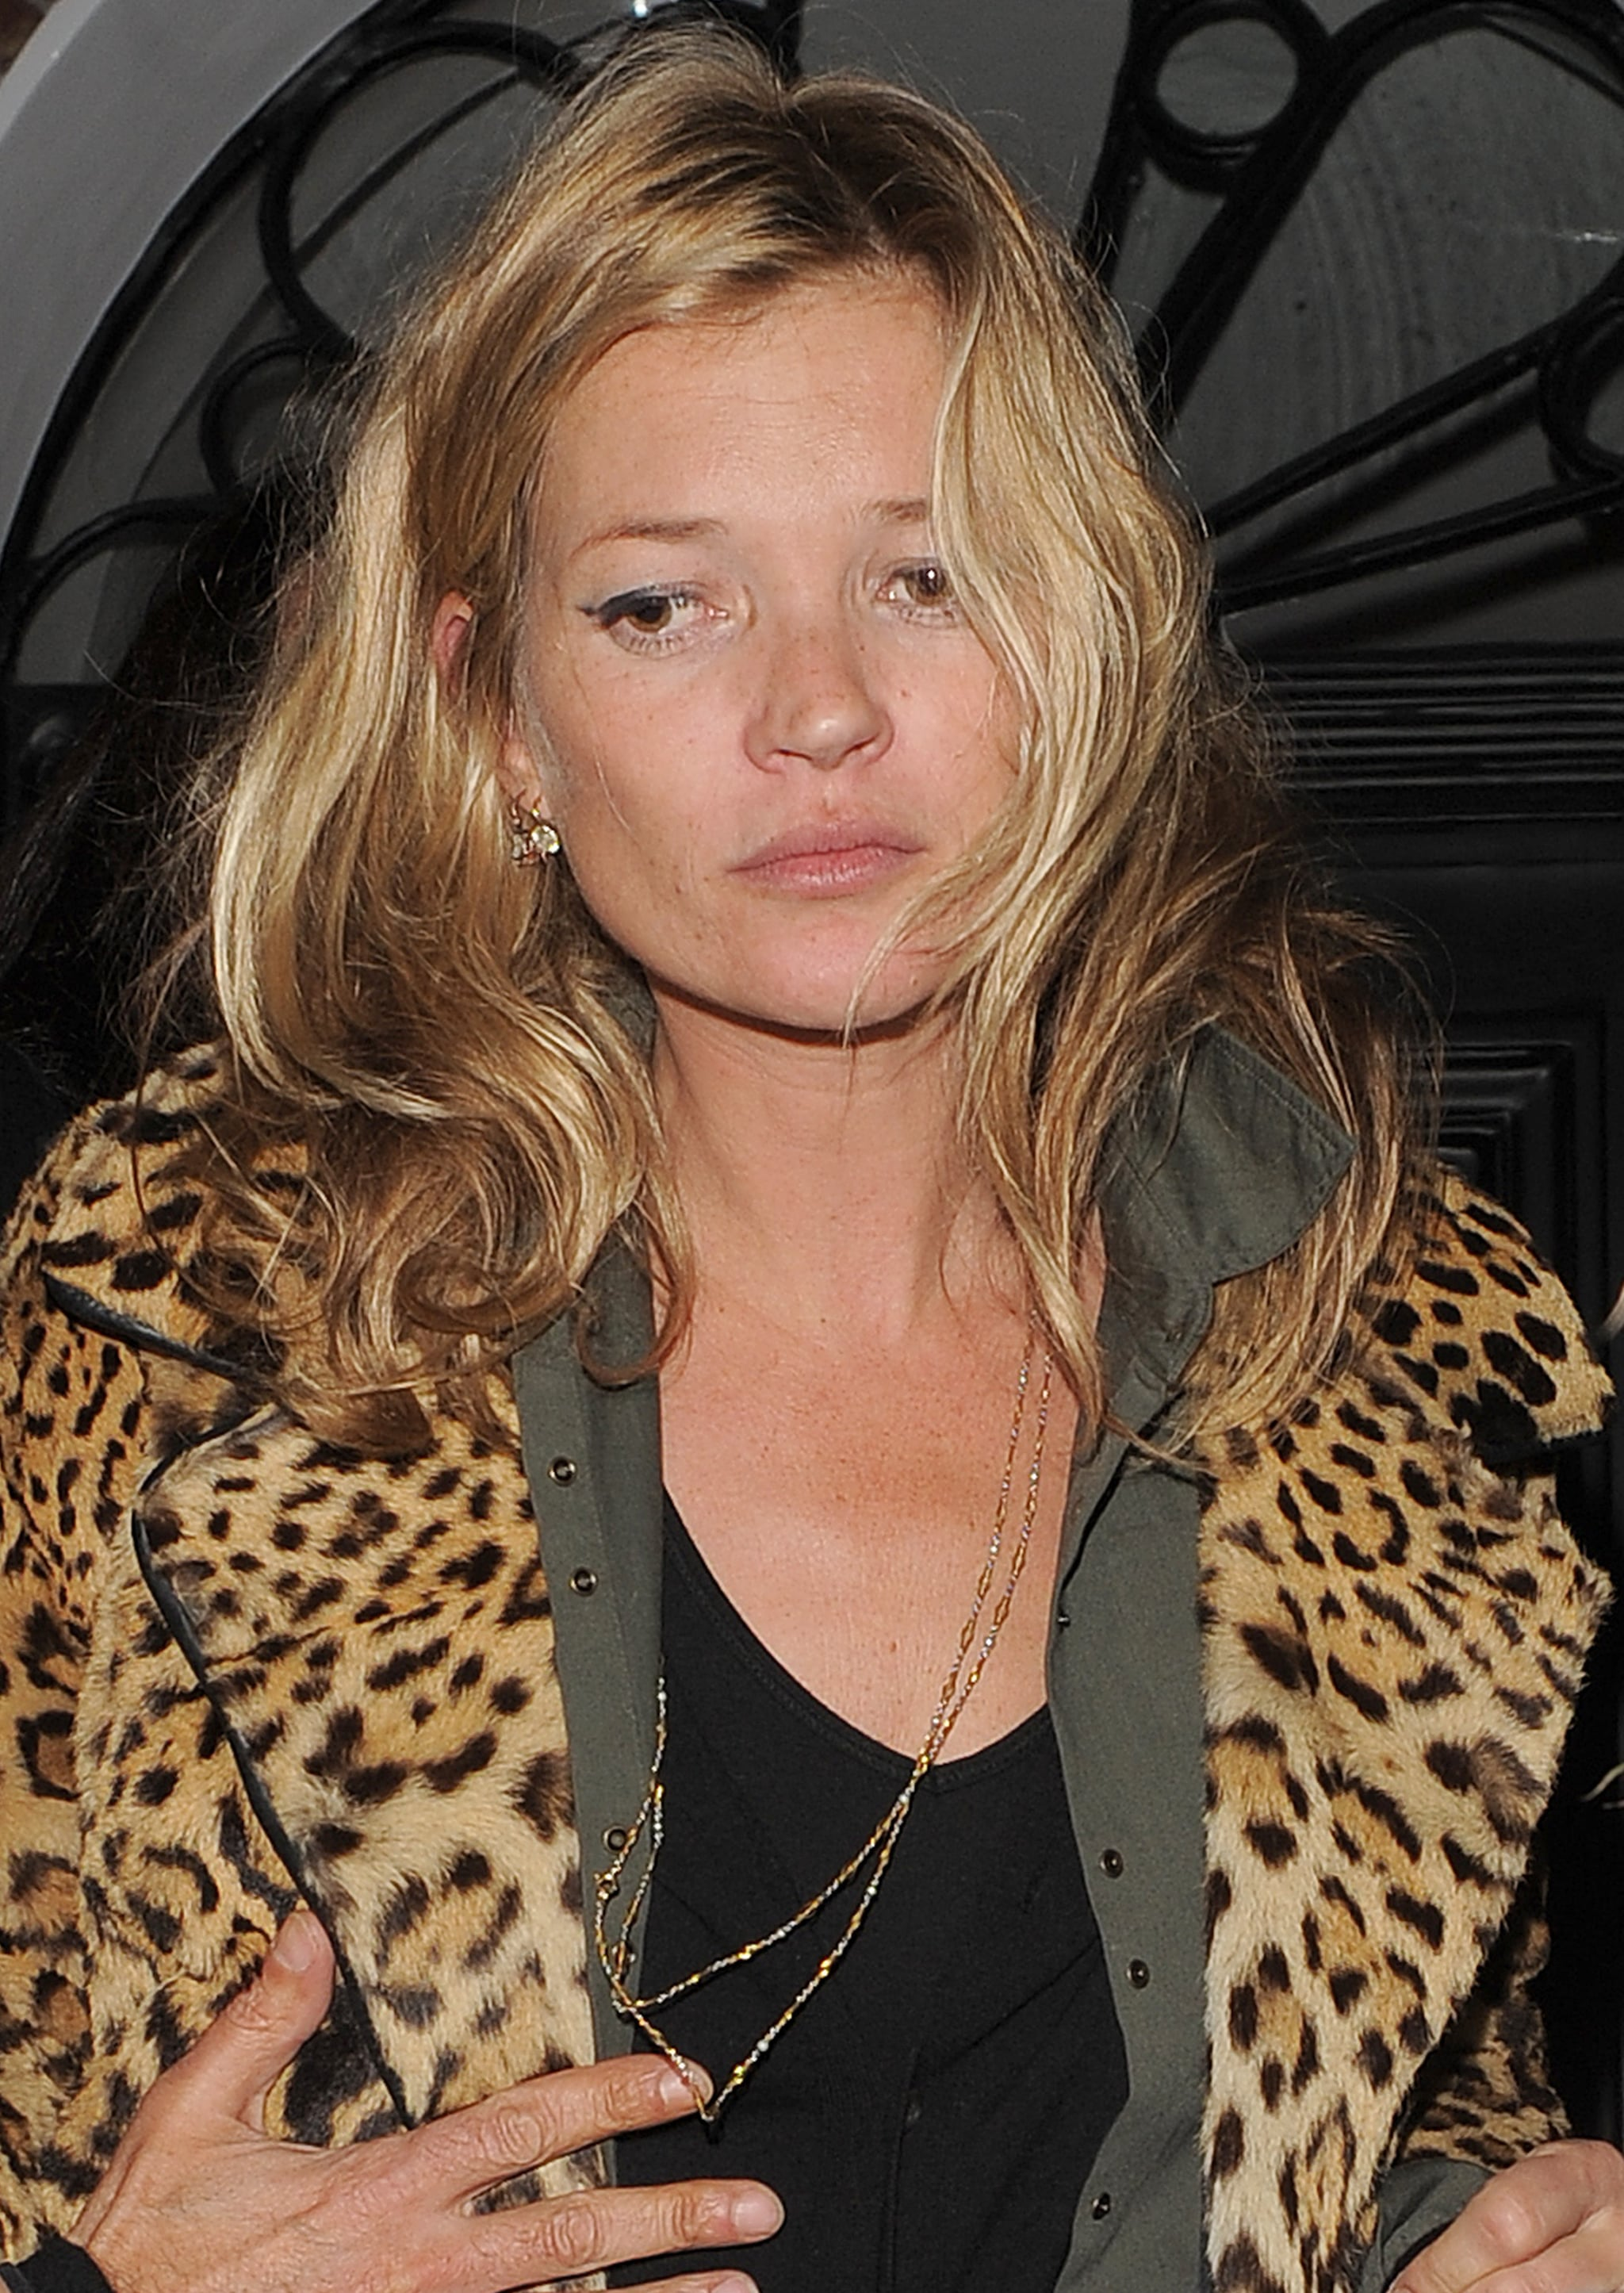 Photos of kate moss after a long night out in mayfair london image altavistaventures Choice Image